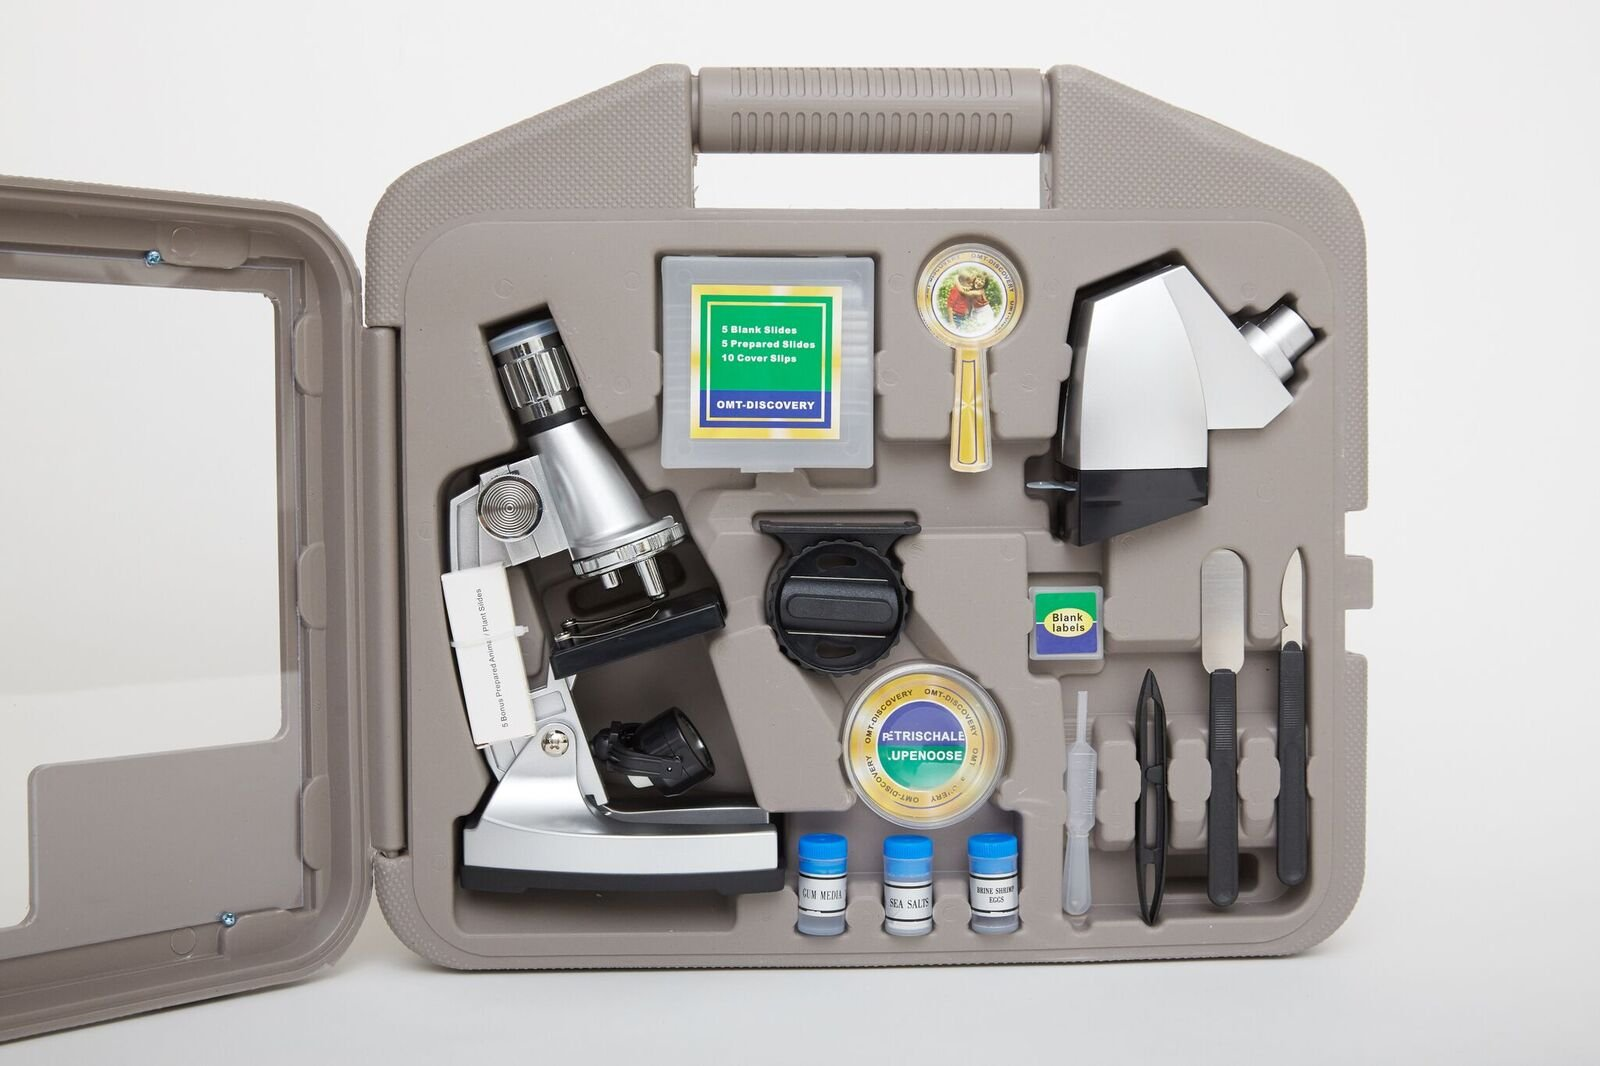 Microscope Kit with 6 Magnifications 50x to 1200x, Includes 37 - Piece Accessory, Smartphone Adapter, Handy Storage Case (5 Bonus Animal/Plant Sides) (37 - Piece Accessory Set + Smart Phone Adopter)